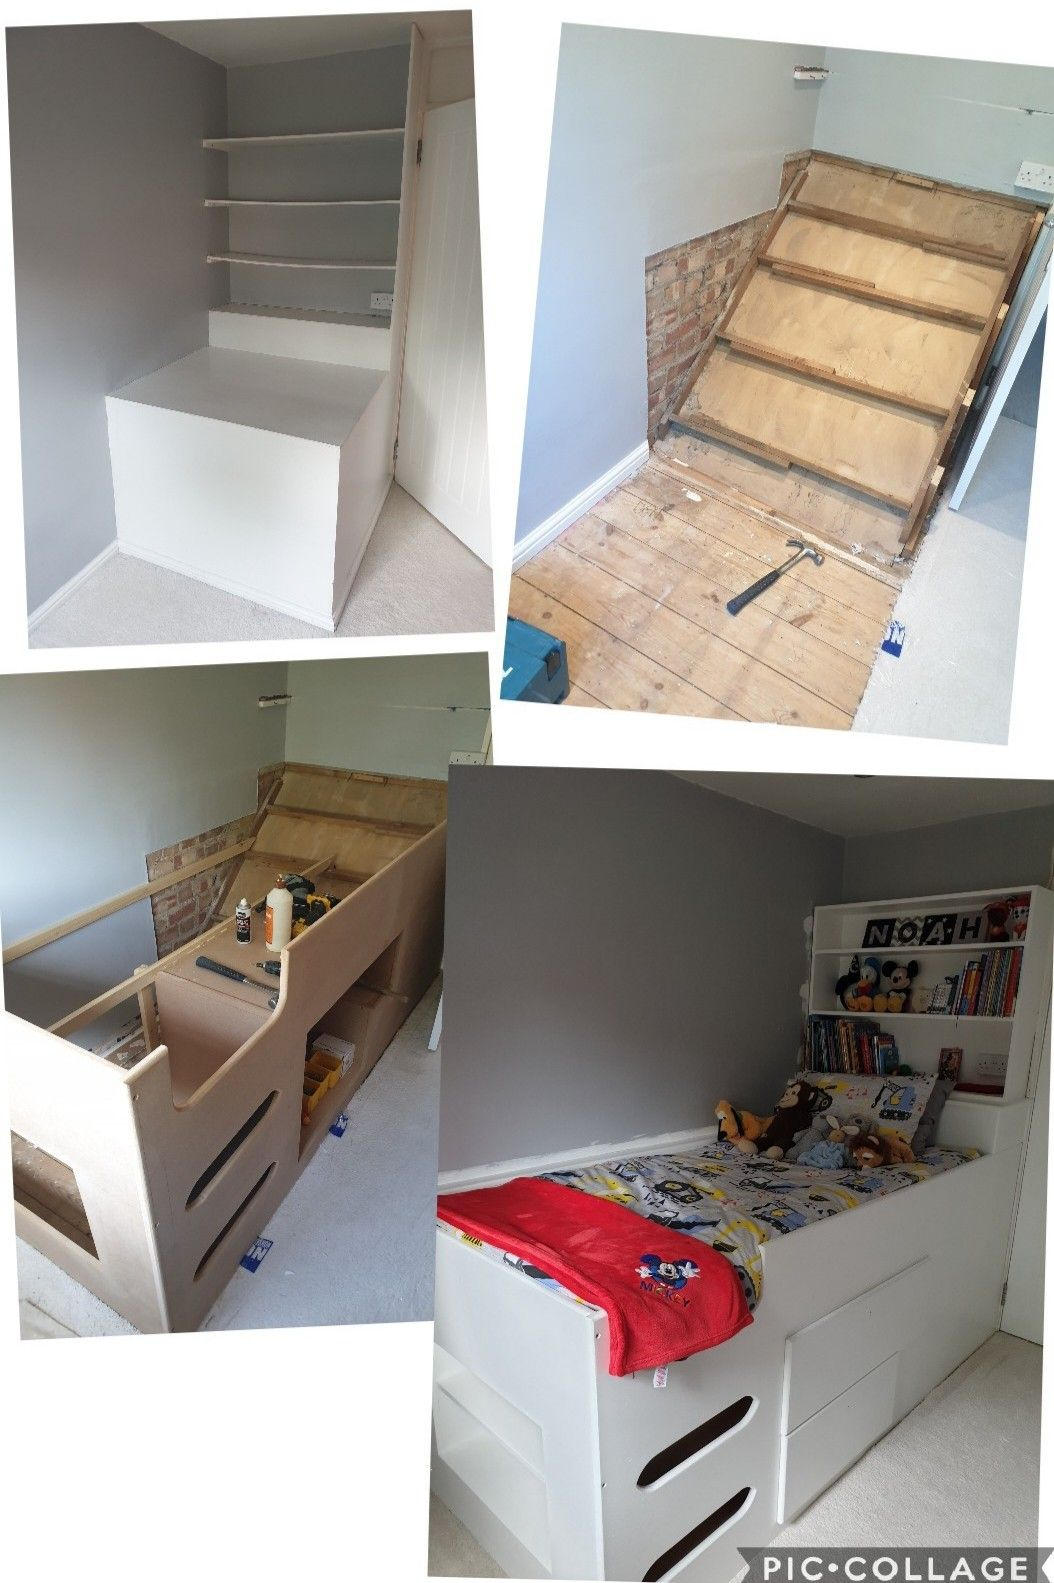 Bespoke Cabin Bed Over Stairs Bulkhead Child S Bed Kid S Bed Box Room Bedroom Box Room Bedroom Ideas Box Bedroom Stair Box In Bedroom